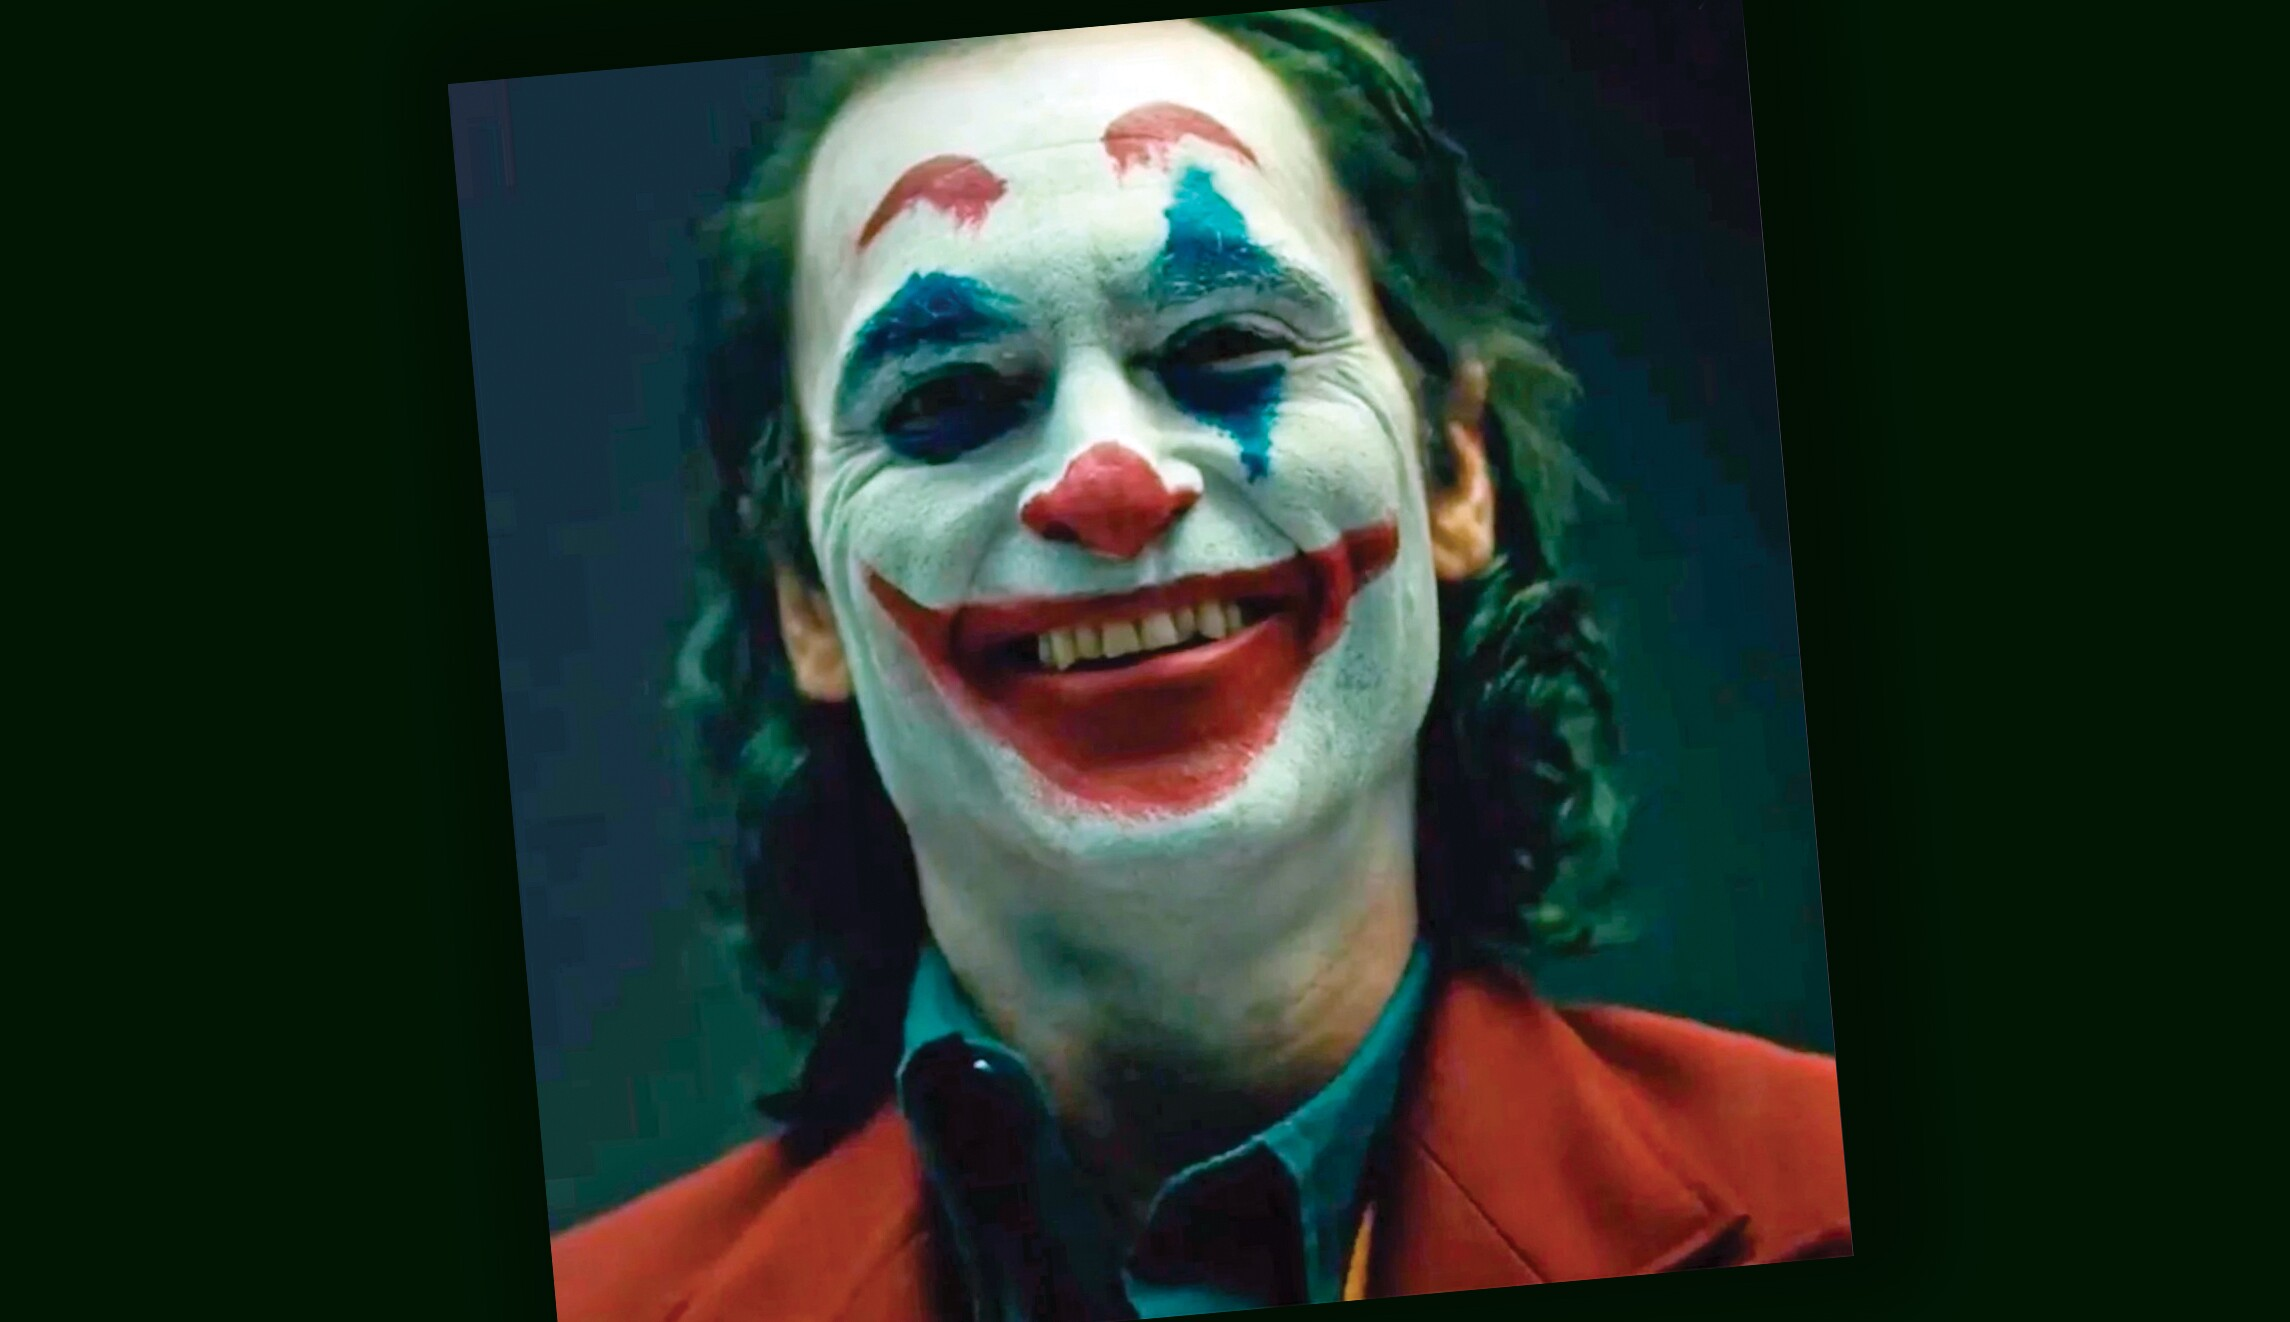 Then and Now: The Joker